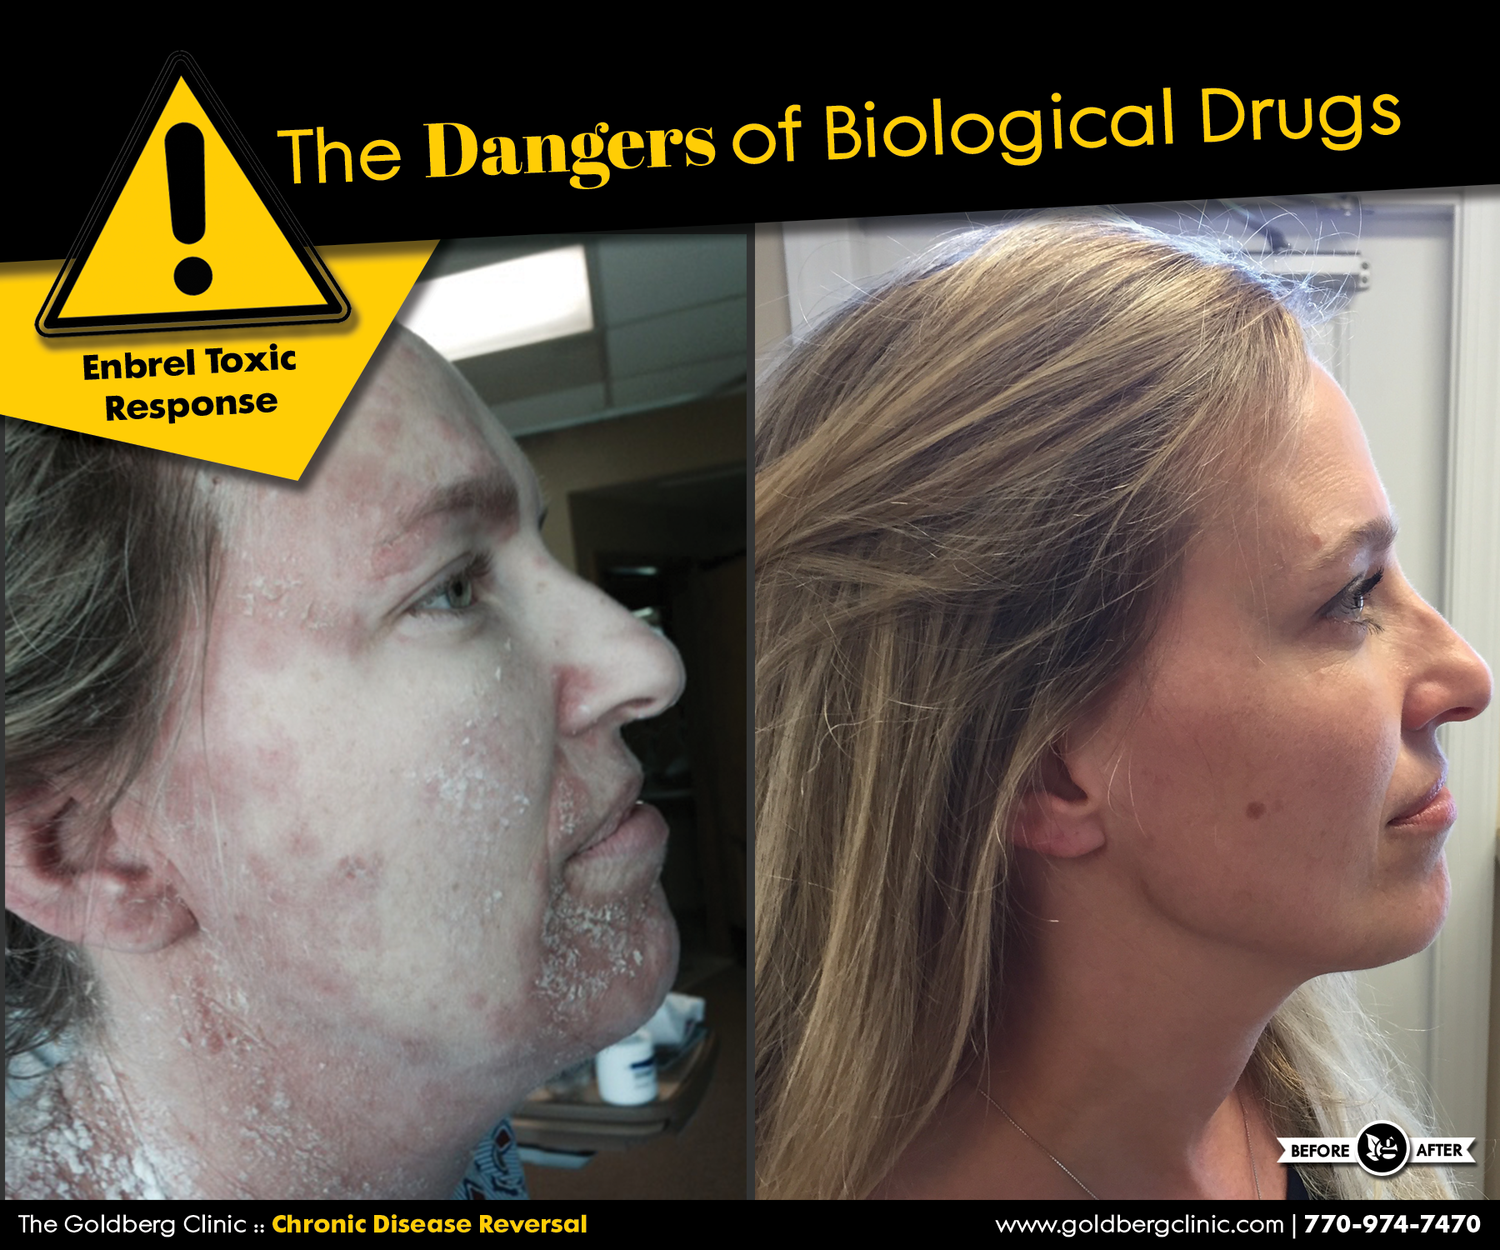 The Dangers of Biological Drugs (Part I) — The Goldberg Clinic for